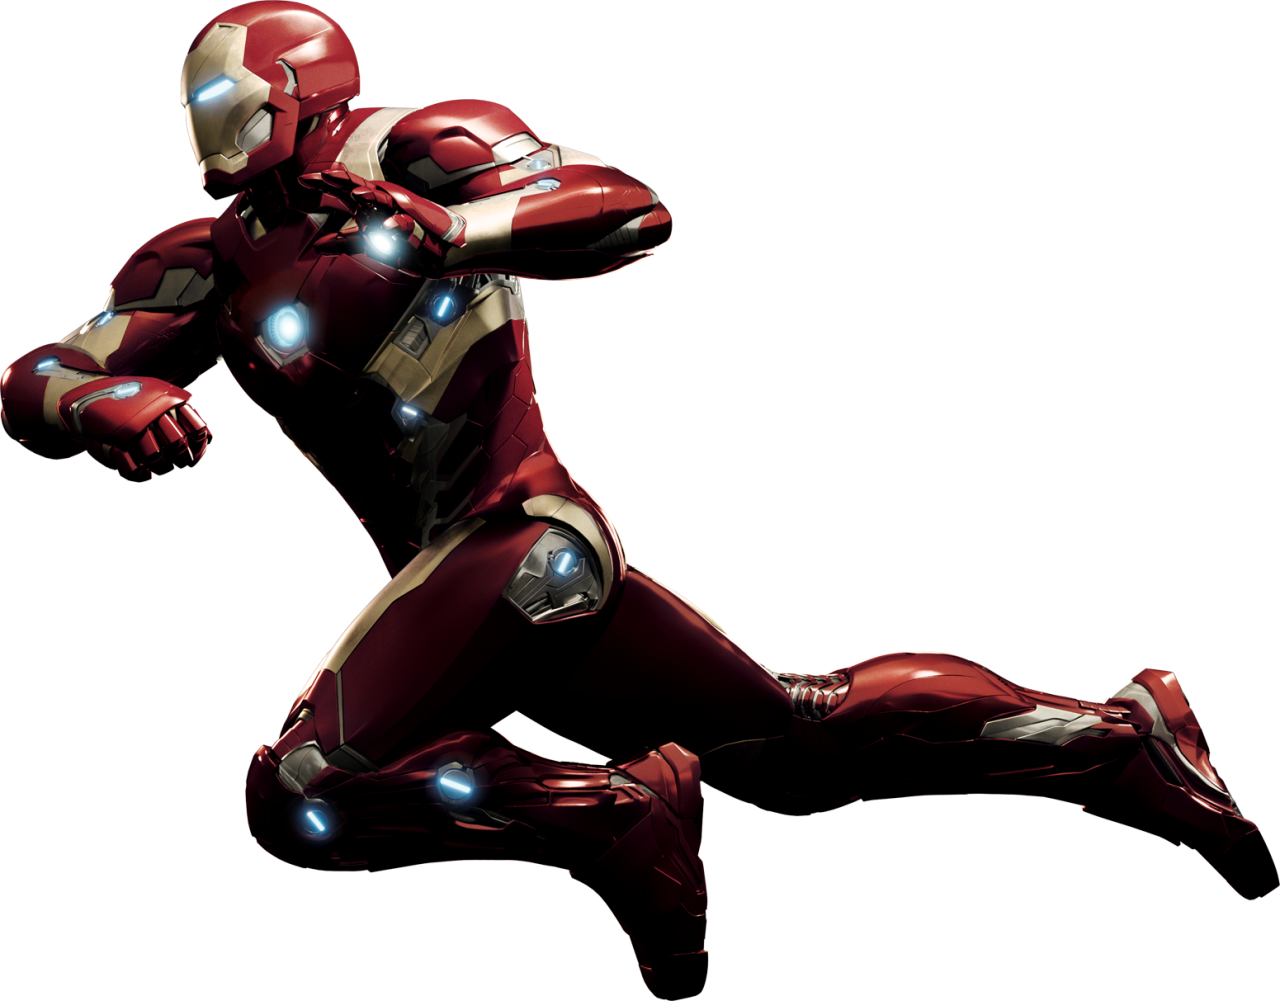 captain-america-civil-war-artwork-iron-man-2